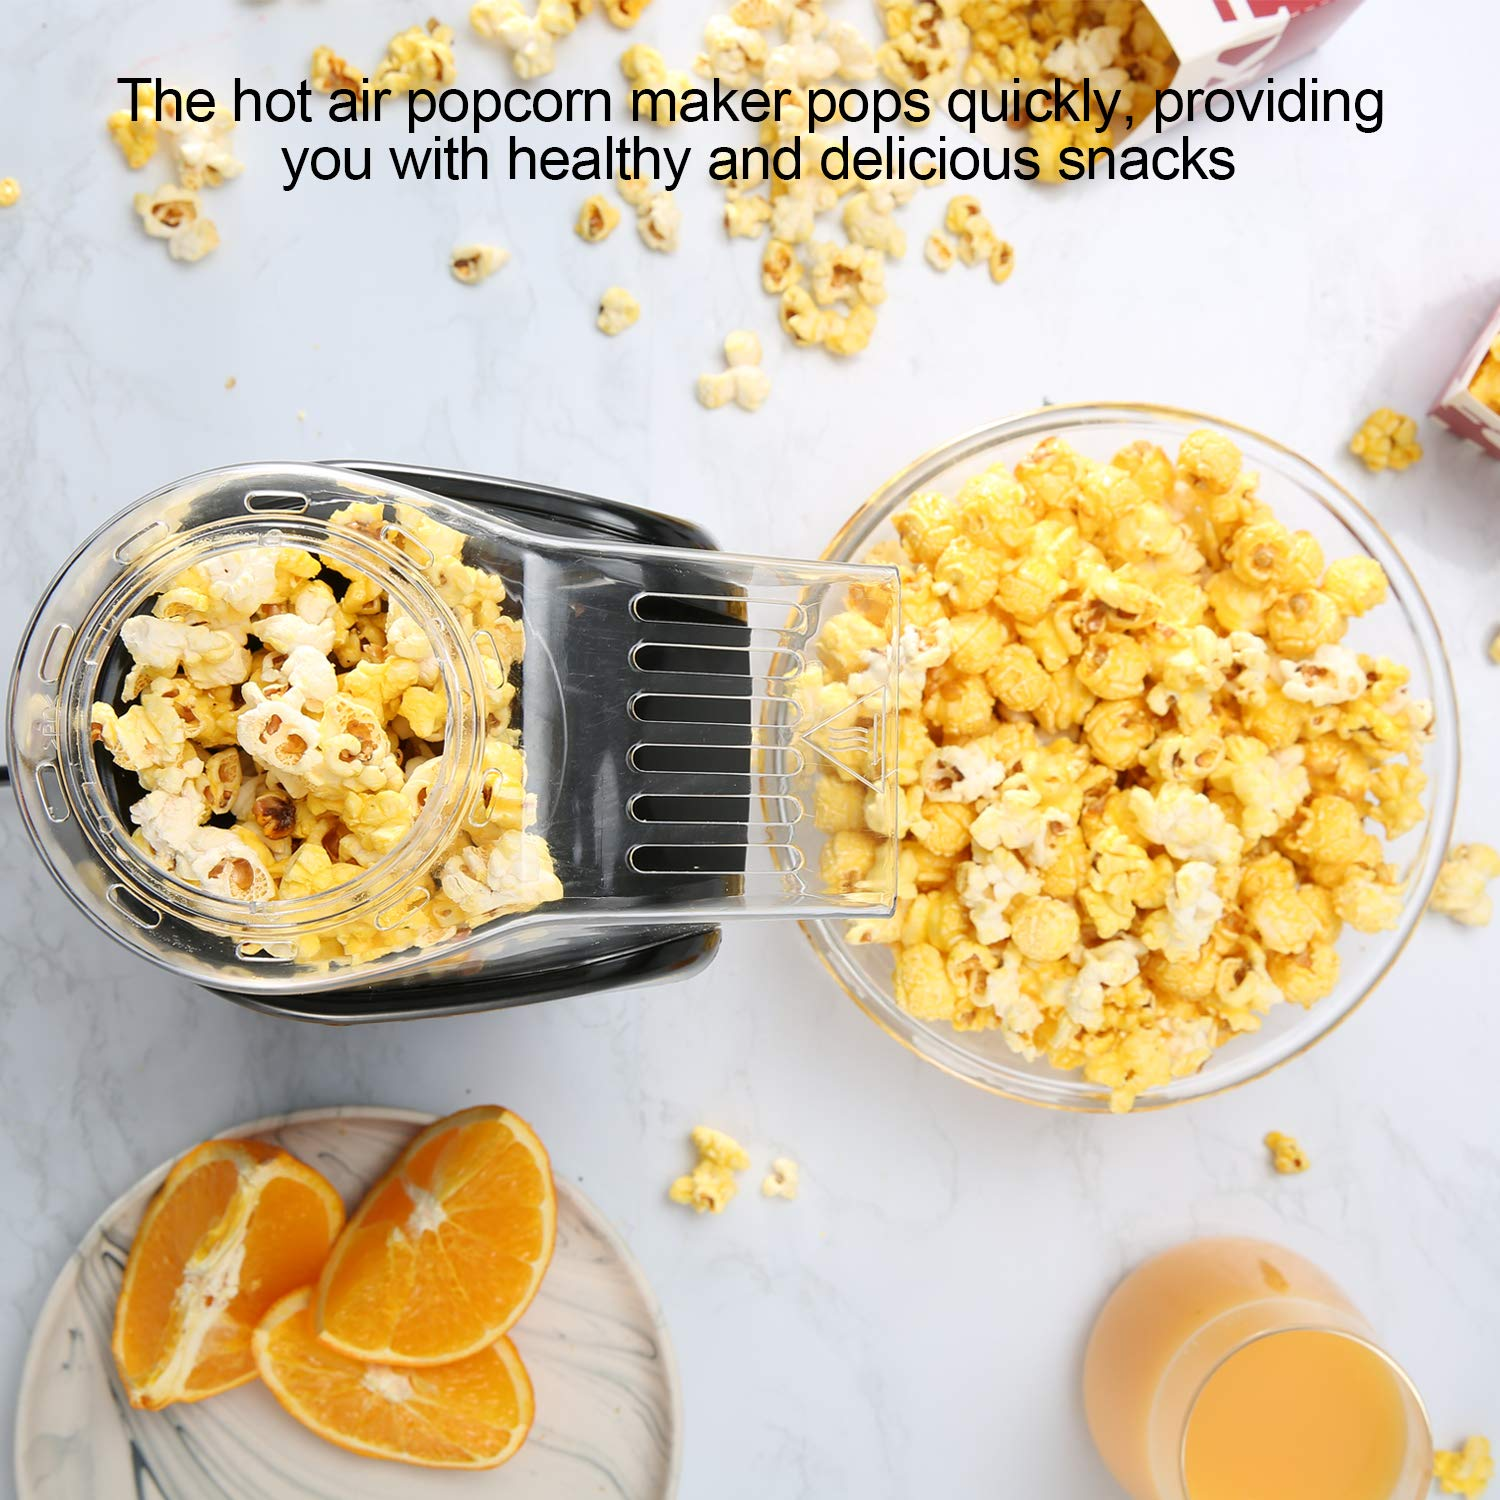 Amazon.com: Hot Air Popcorn Popper, Aicok 1200W Popcorn Maker with Measuring Cup, Removable Lid, No Oil Needed, FDA and ETL Approved, Black: Kitchen & ...